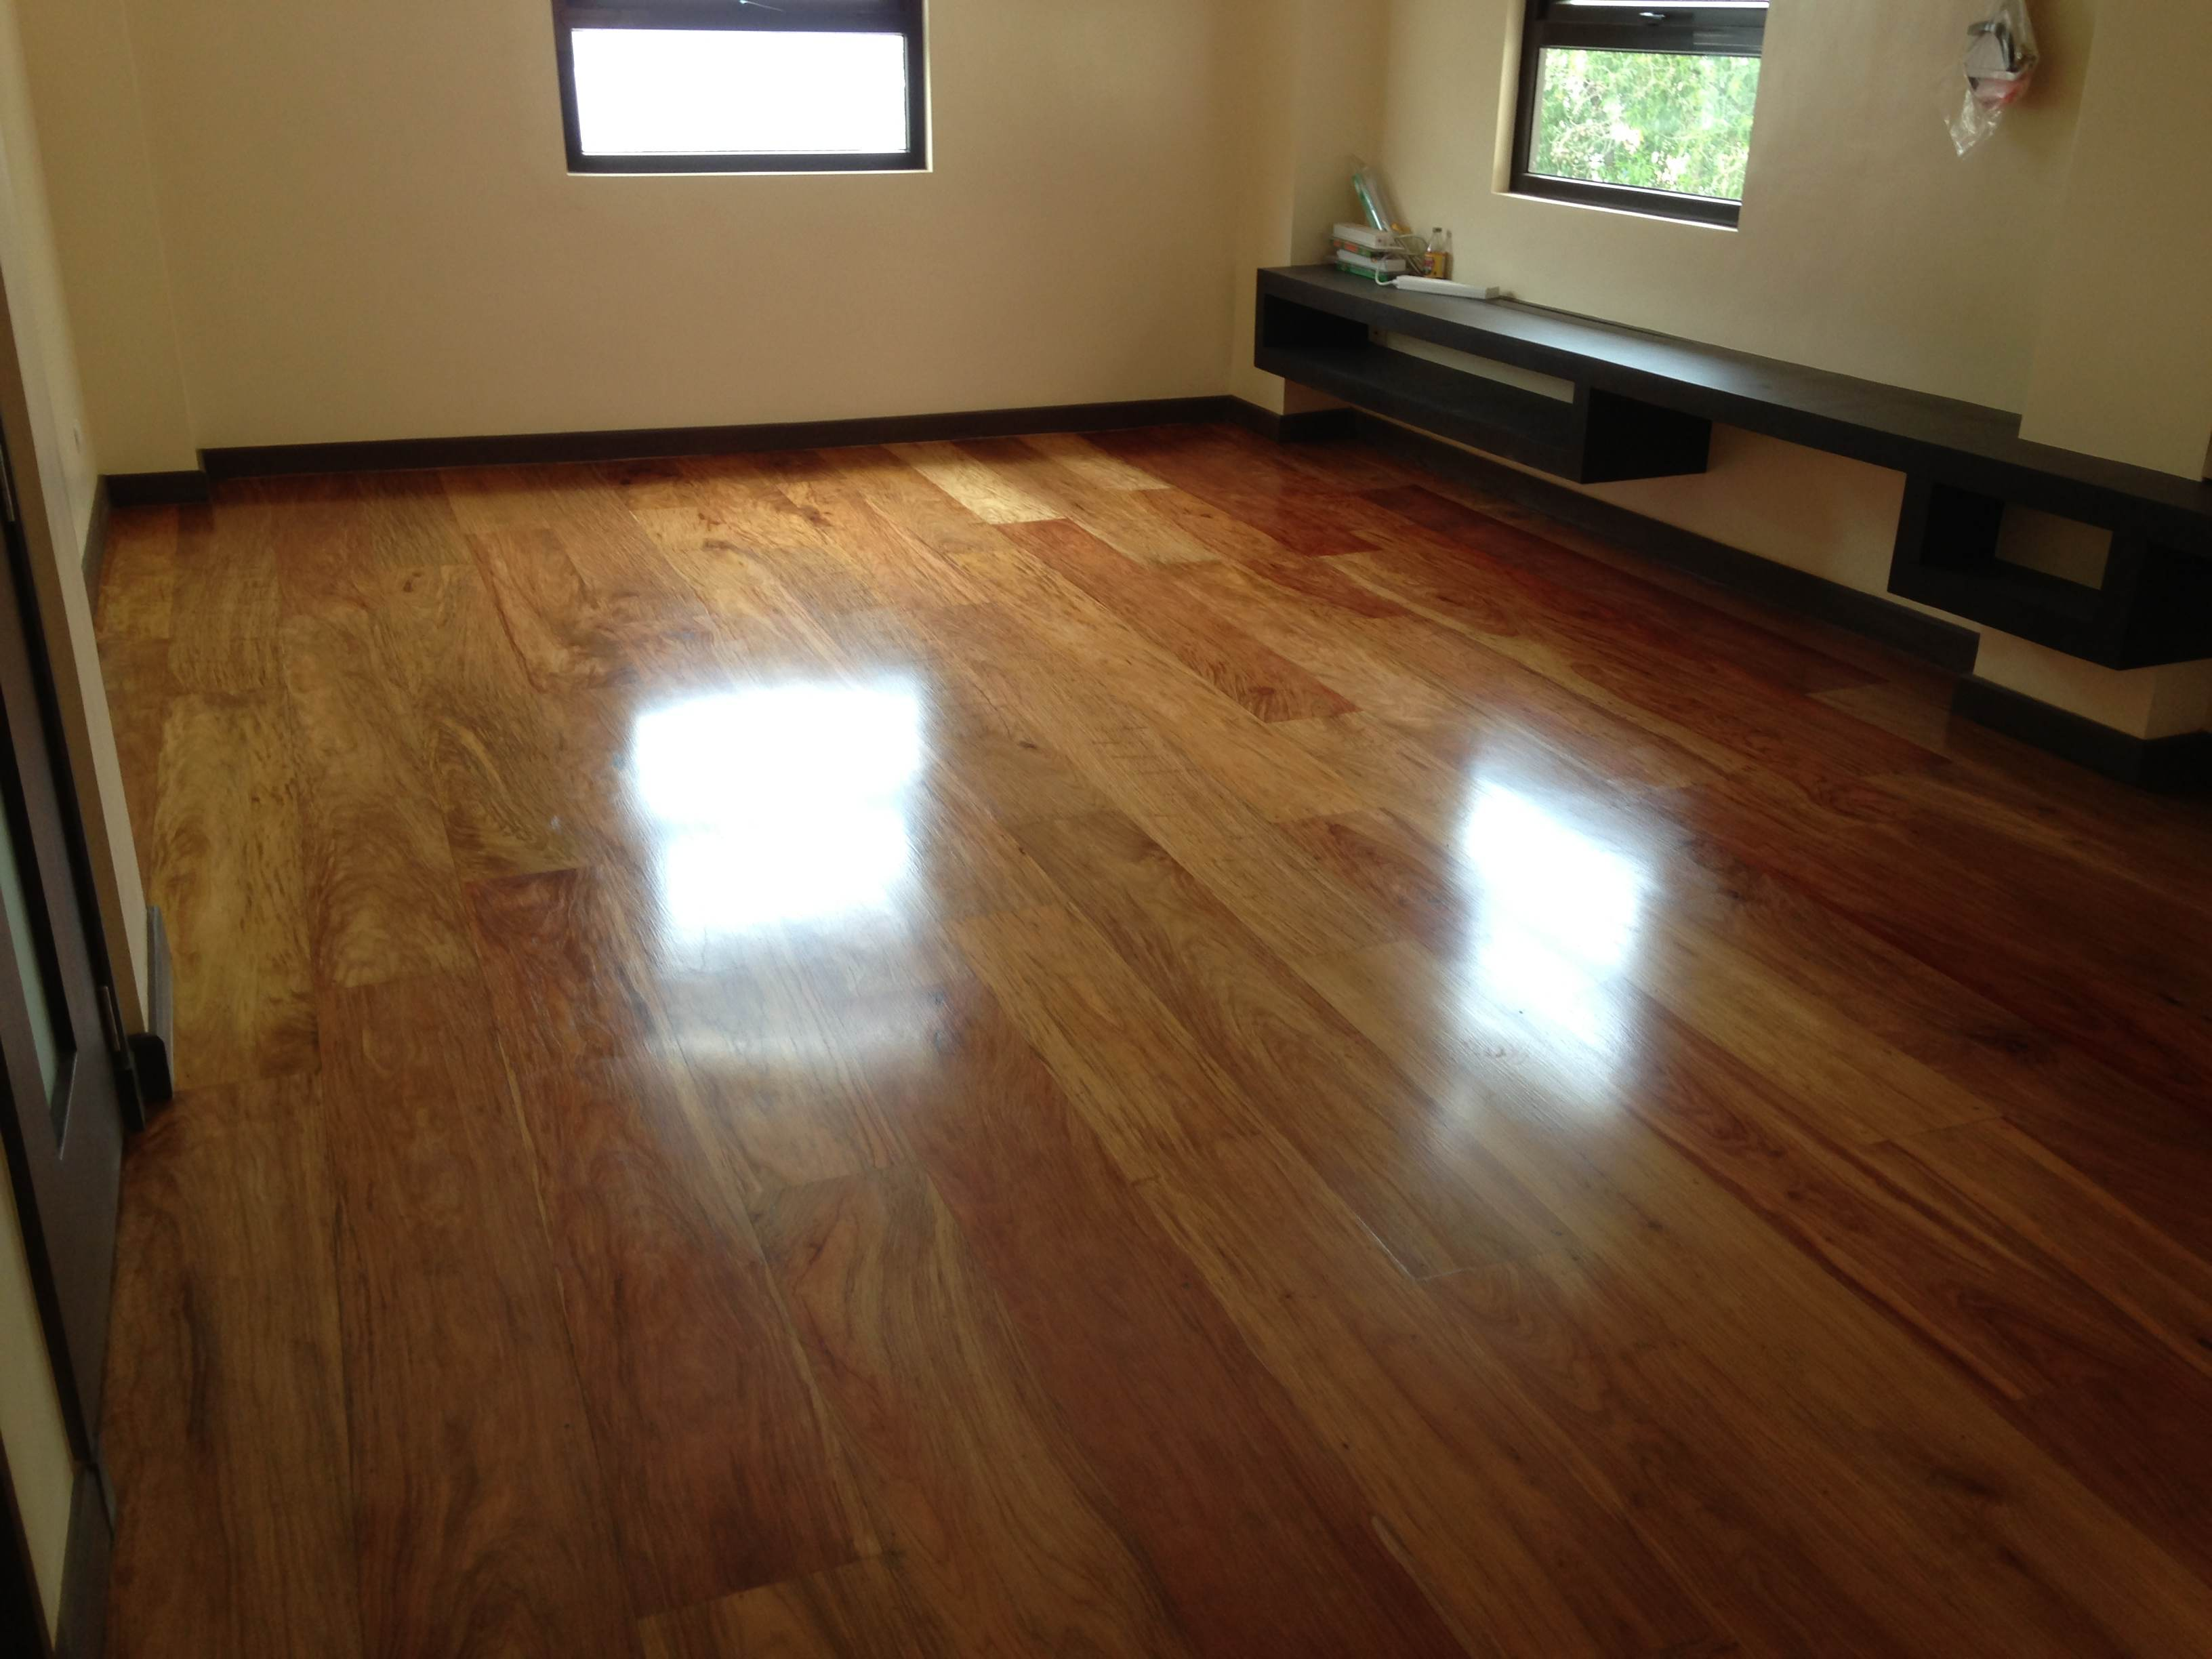 Narra planks wood flooring easywood products for Flooring products